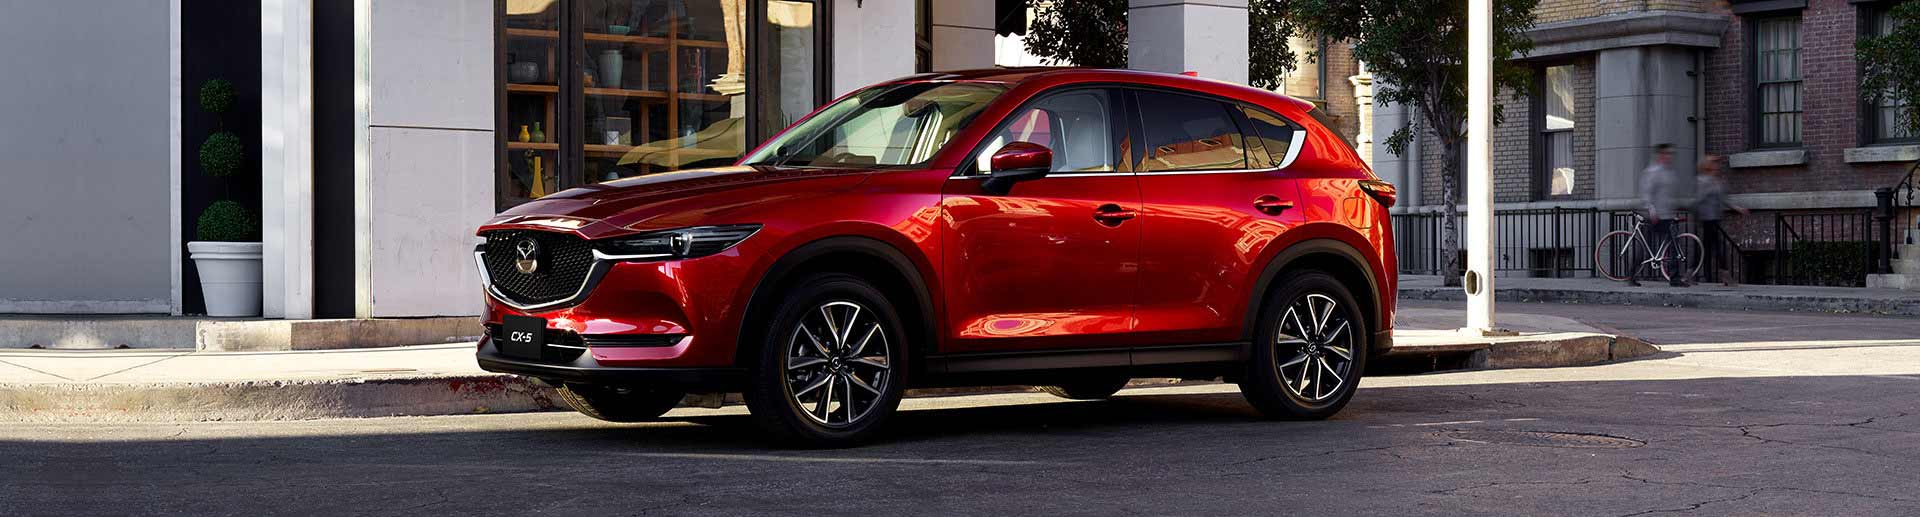 mazda cx review locations test of dealership drive expert